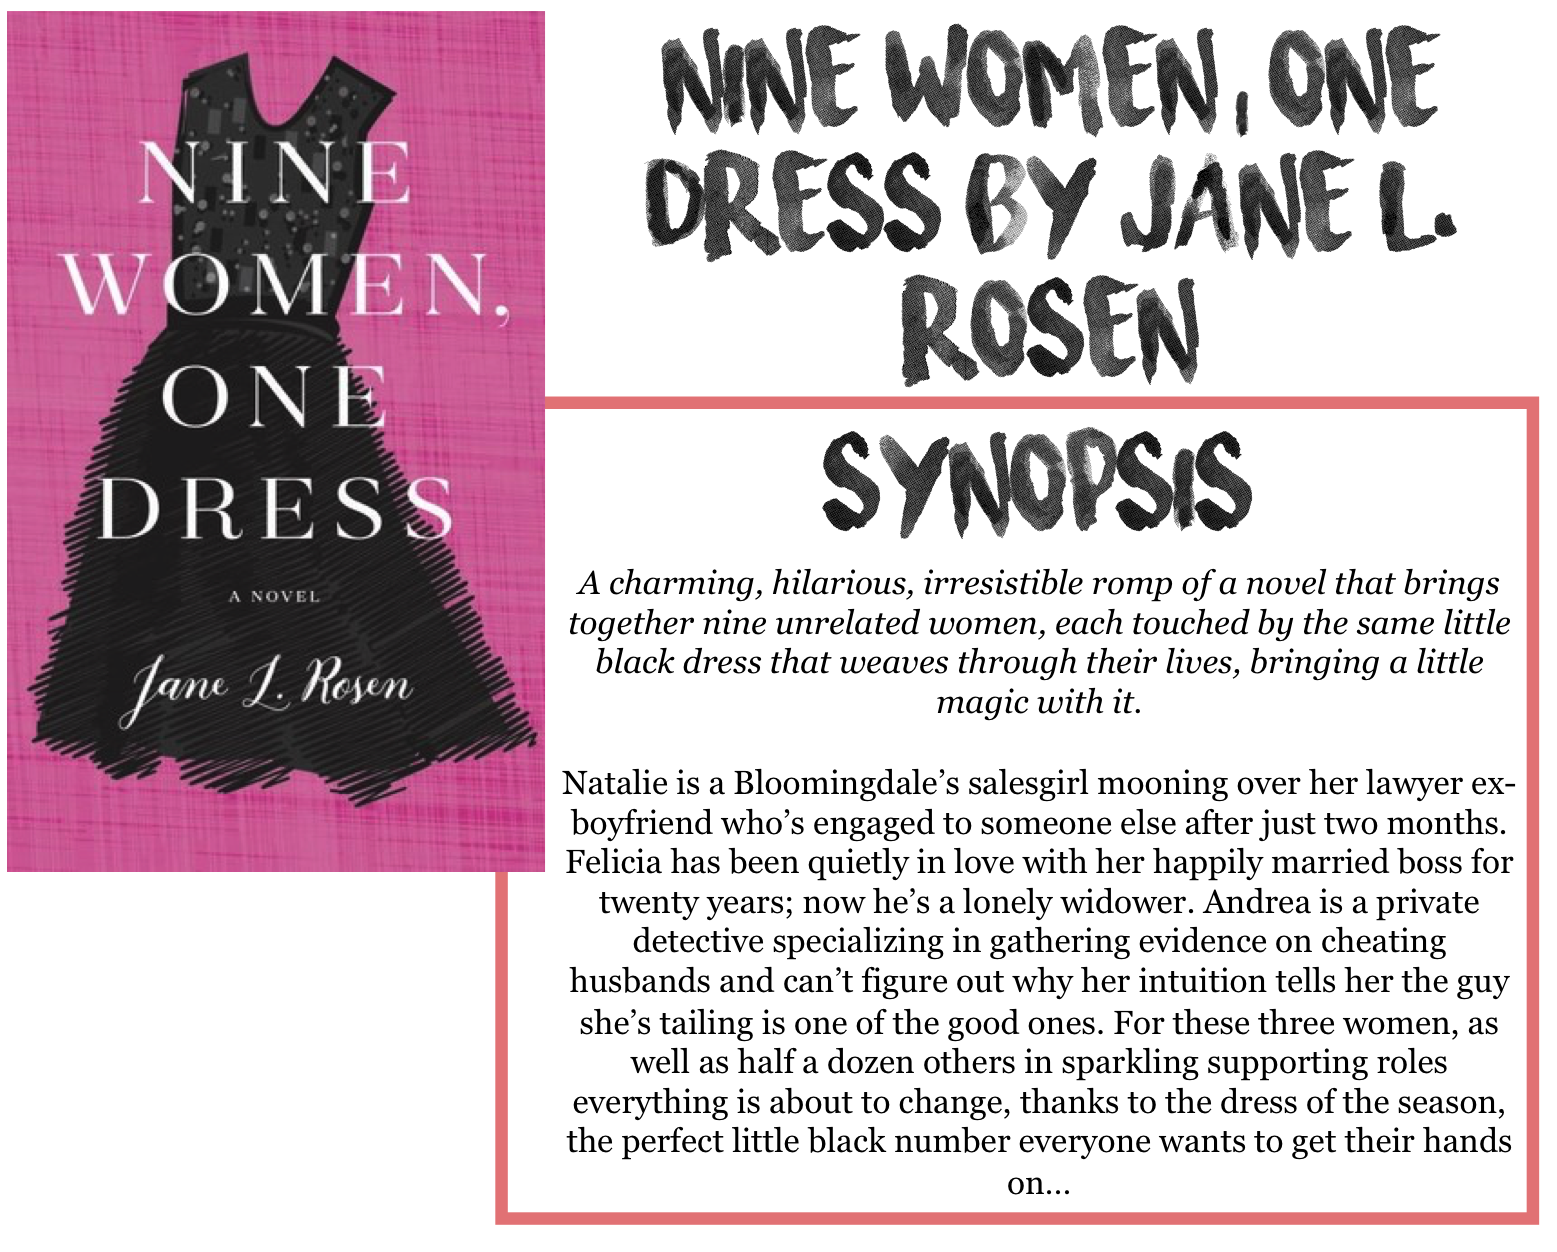 The dress jane l rosen - This Was A Very Different Book Than What I Am Used To Reading And Not Necessarily In A Bad Way I Was Expecting A Sort Of A The Sisterhood Of The Traveling